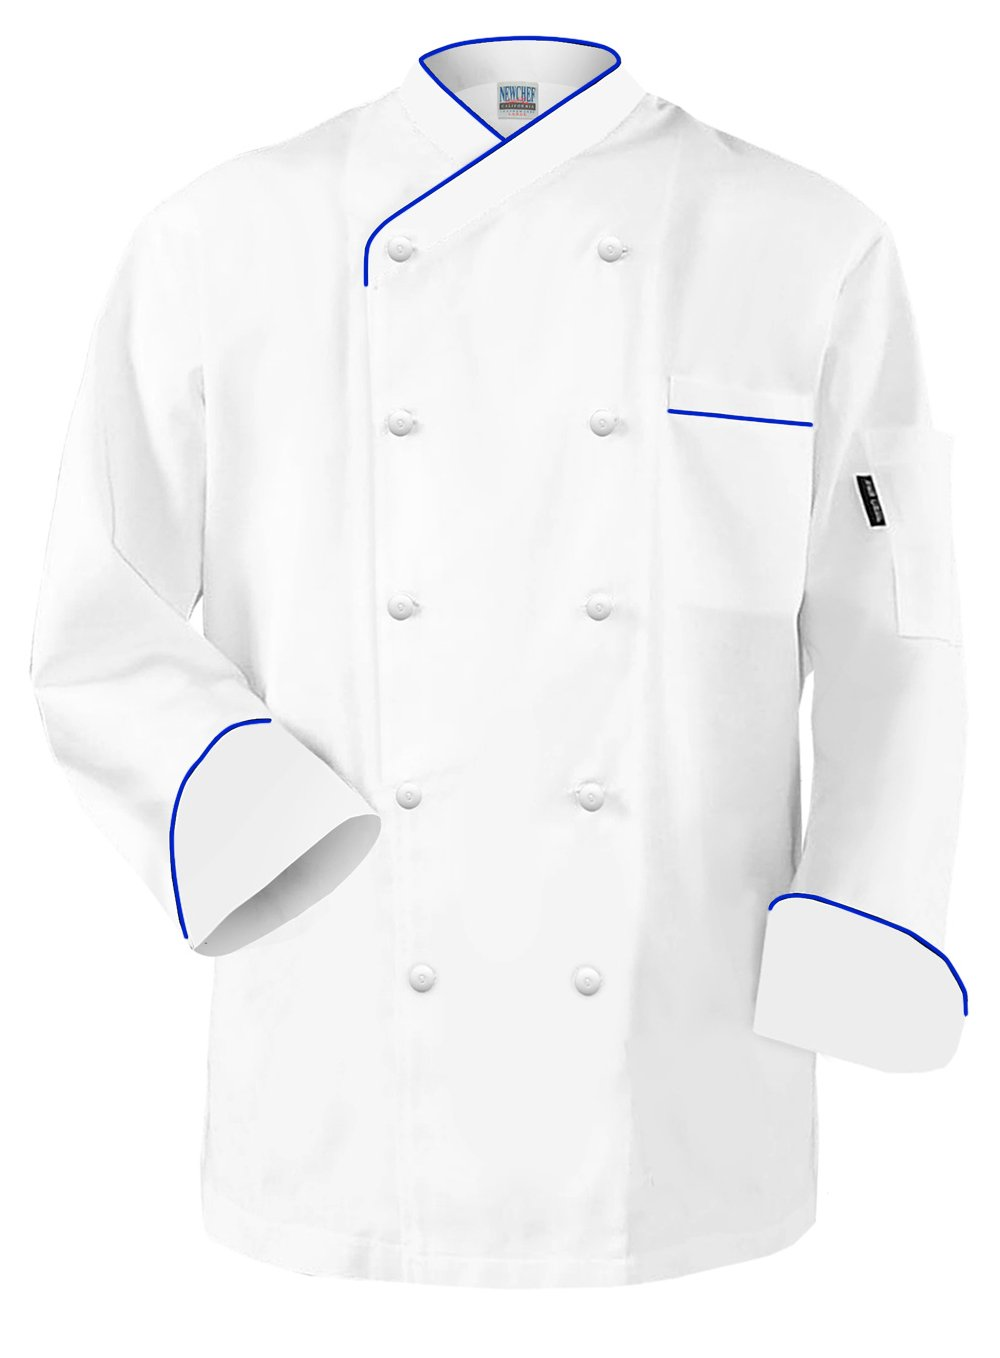 Newchef Fashion Frenchy Chef Coat White with Royal Blue Trim 2XL White by Newchef Fashion